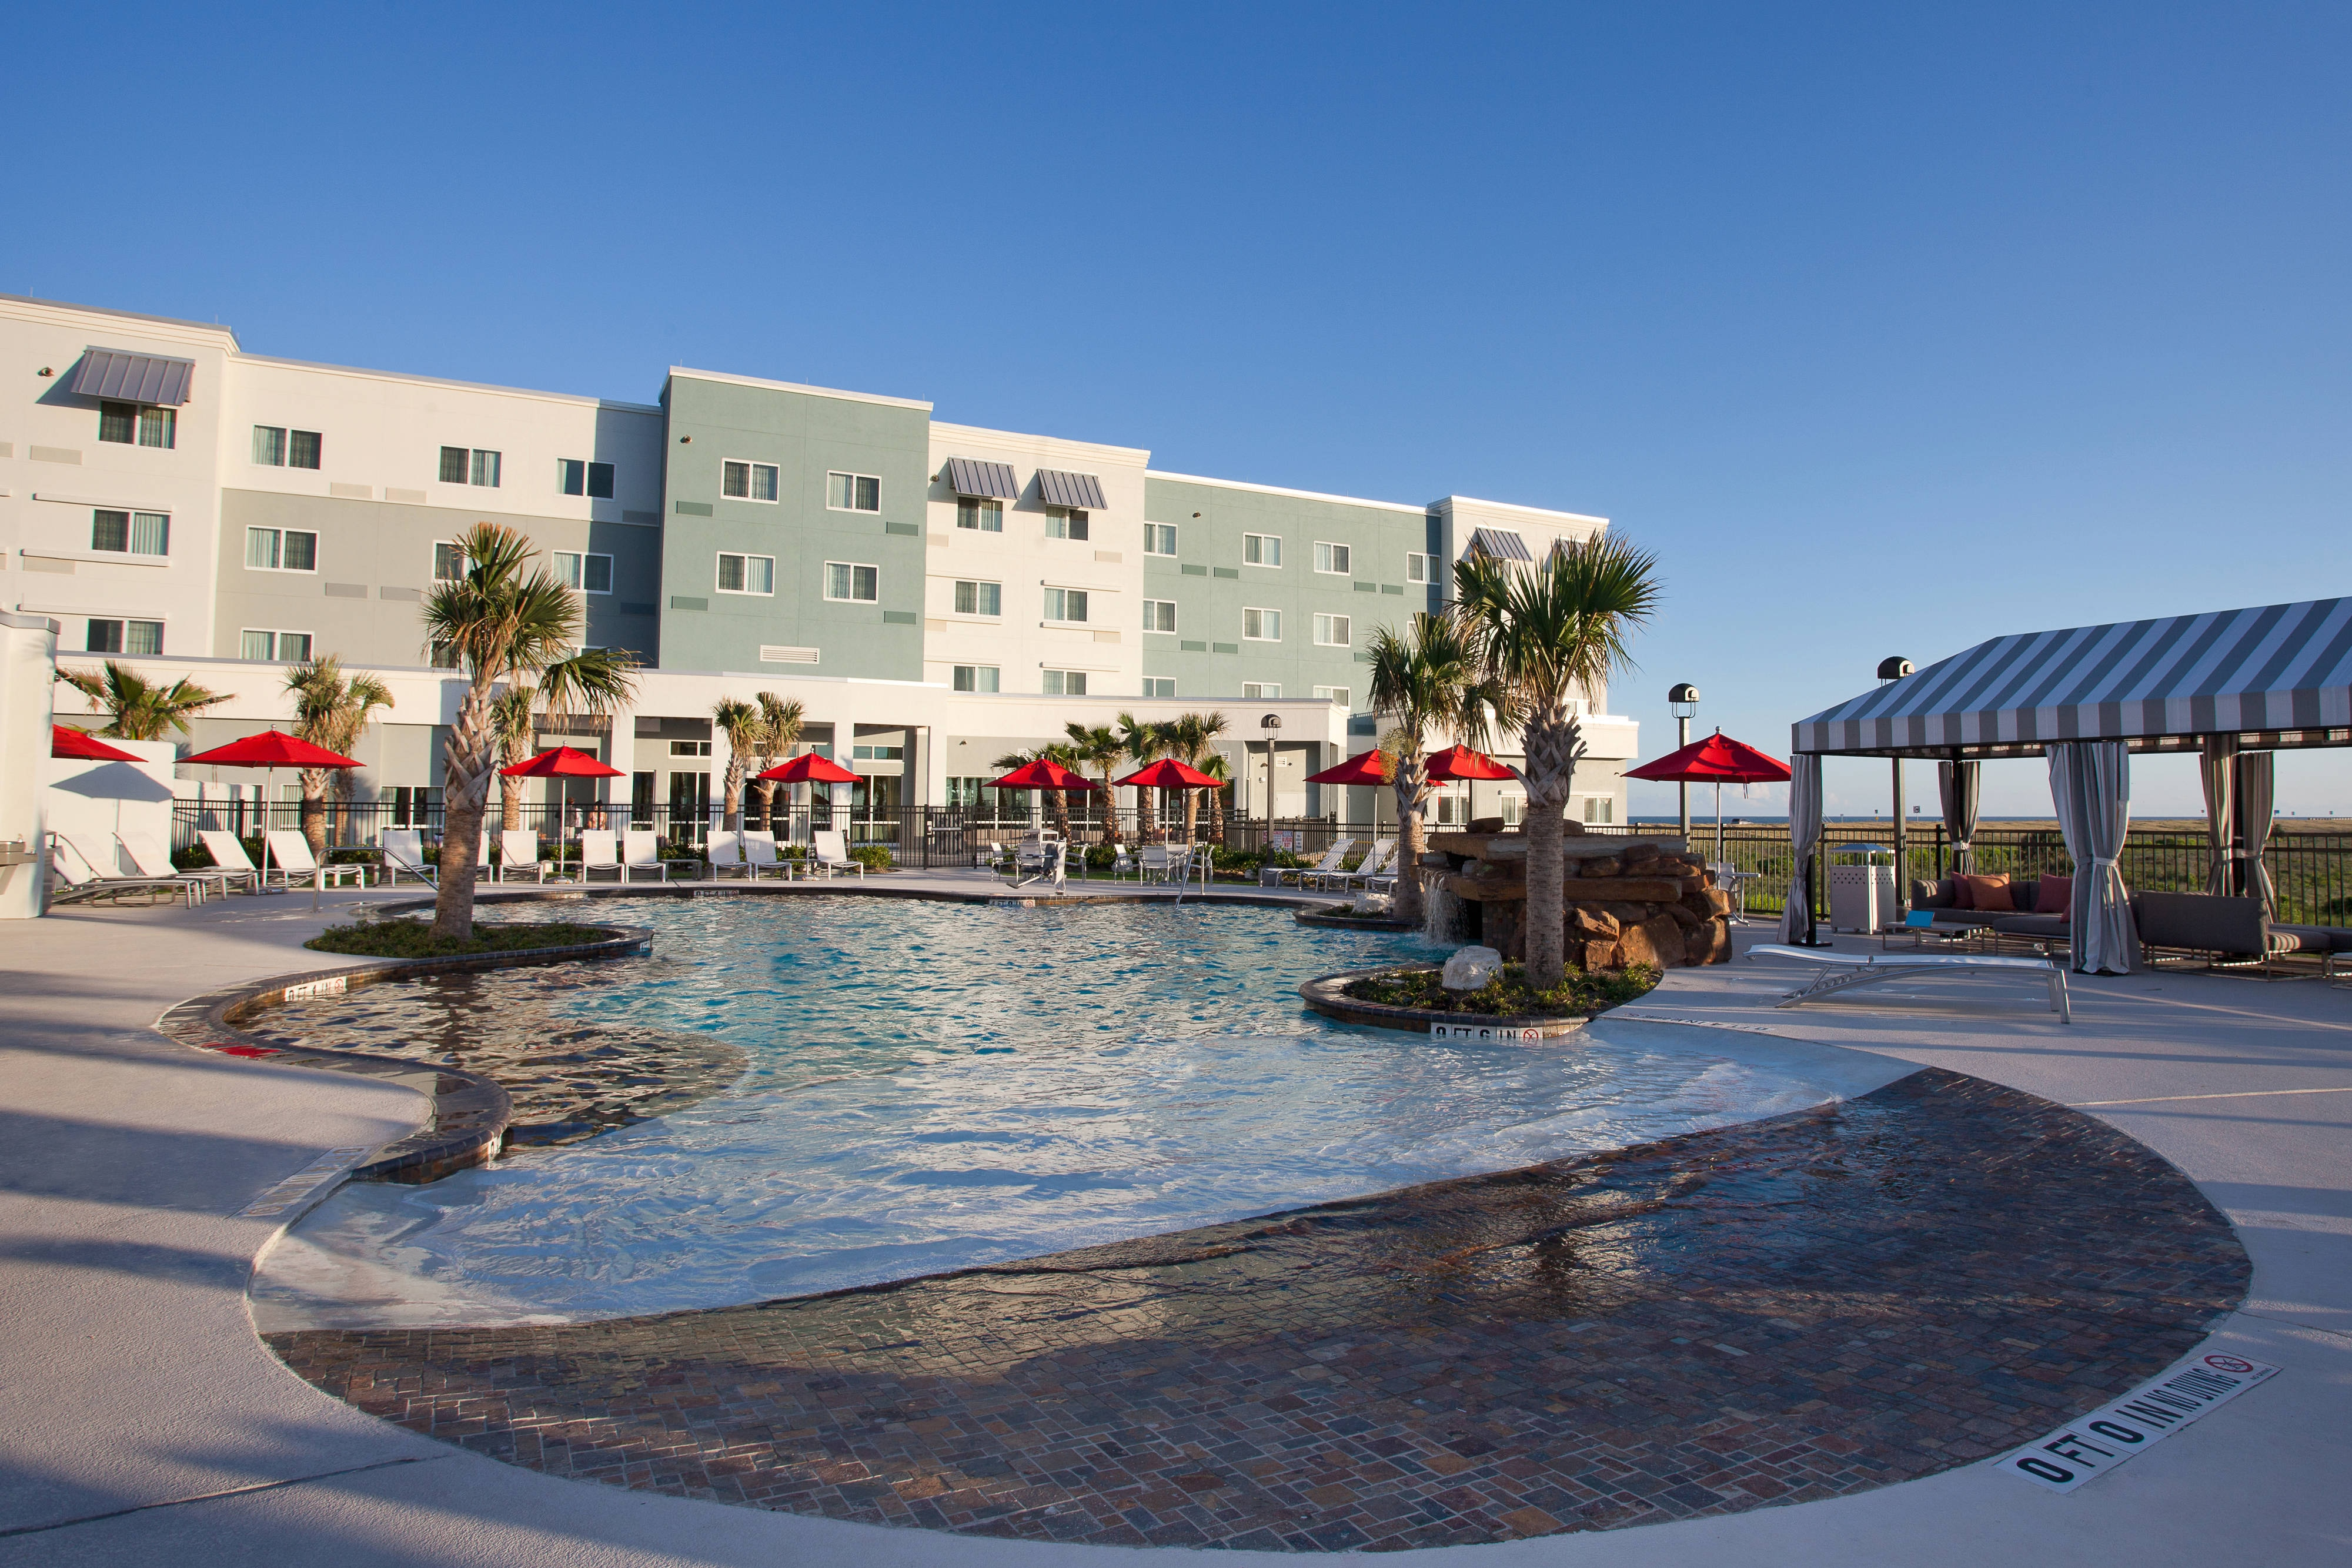 Hotel outdoor pool Galveston Island